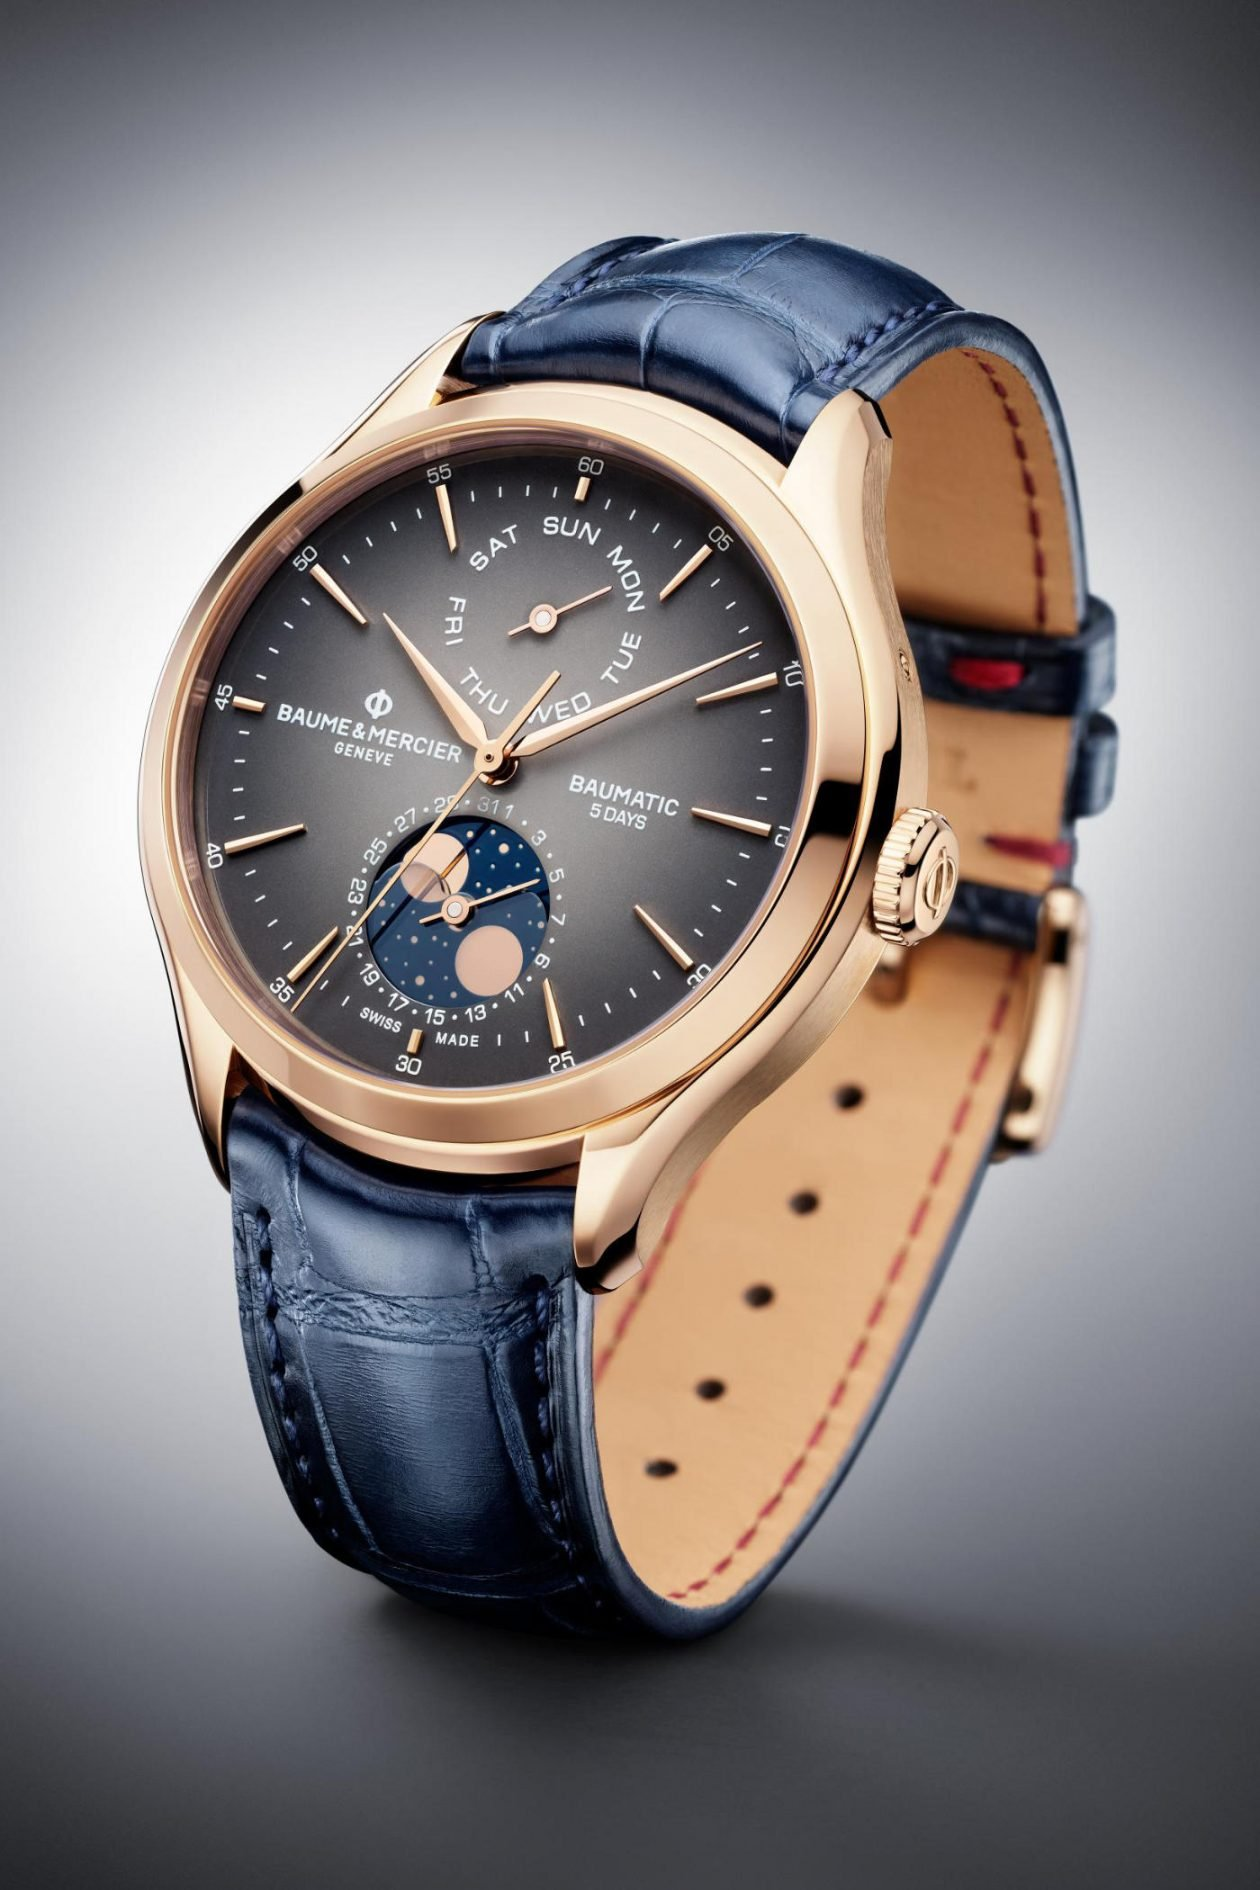 Baume & Mercier Clifton Baumatic Day-date Moon Phase